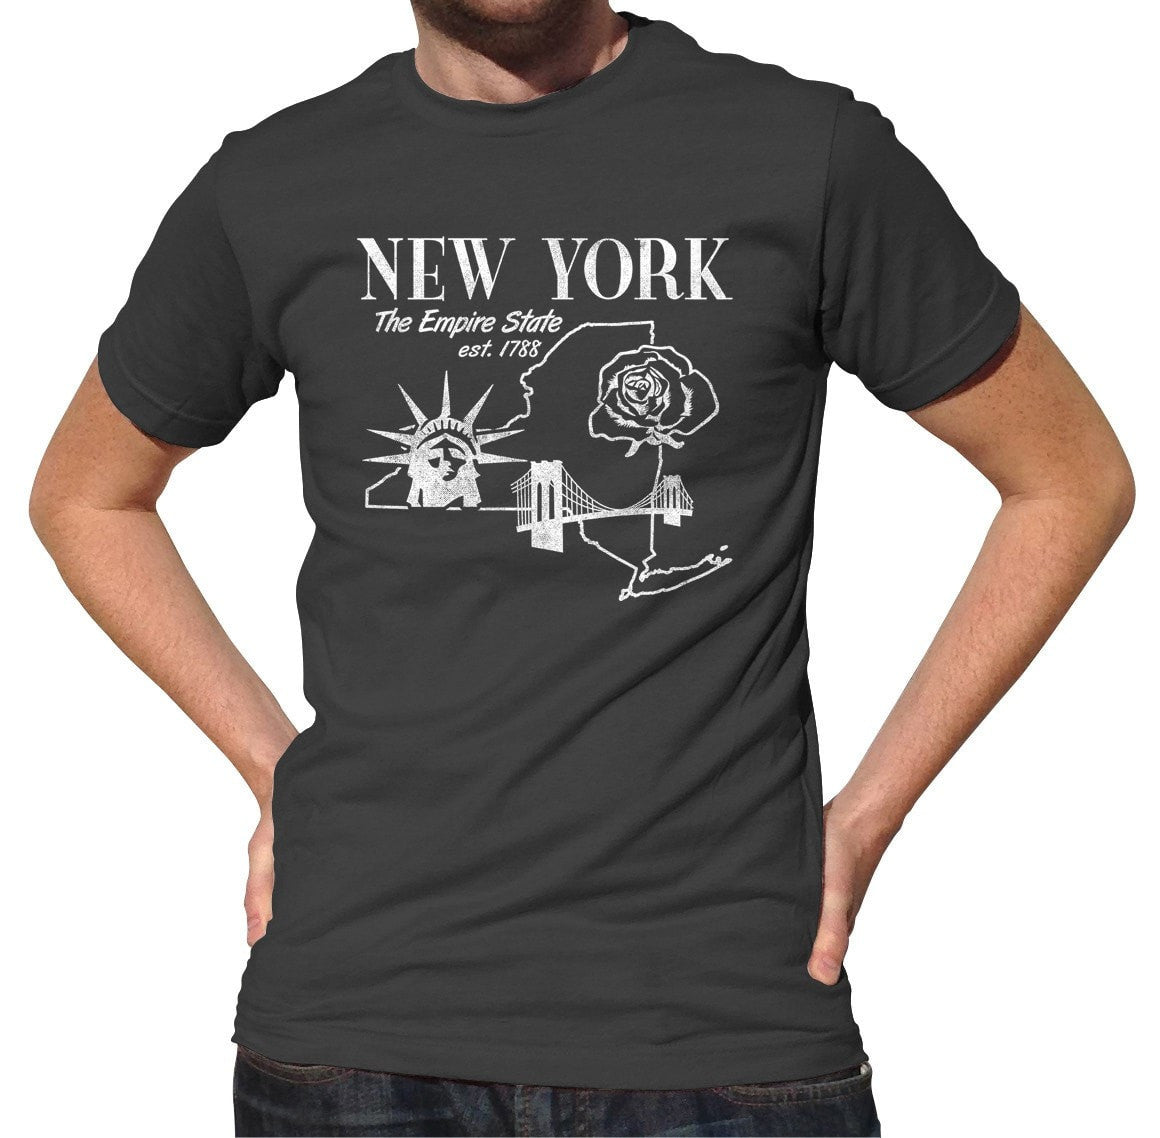 Men's Retro New York T-Shirt Vintage State Pride